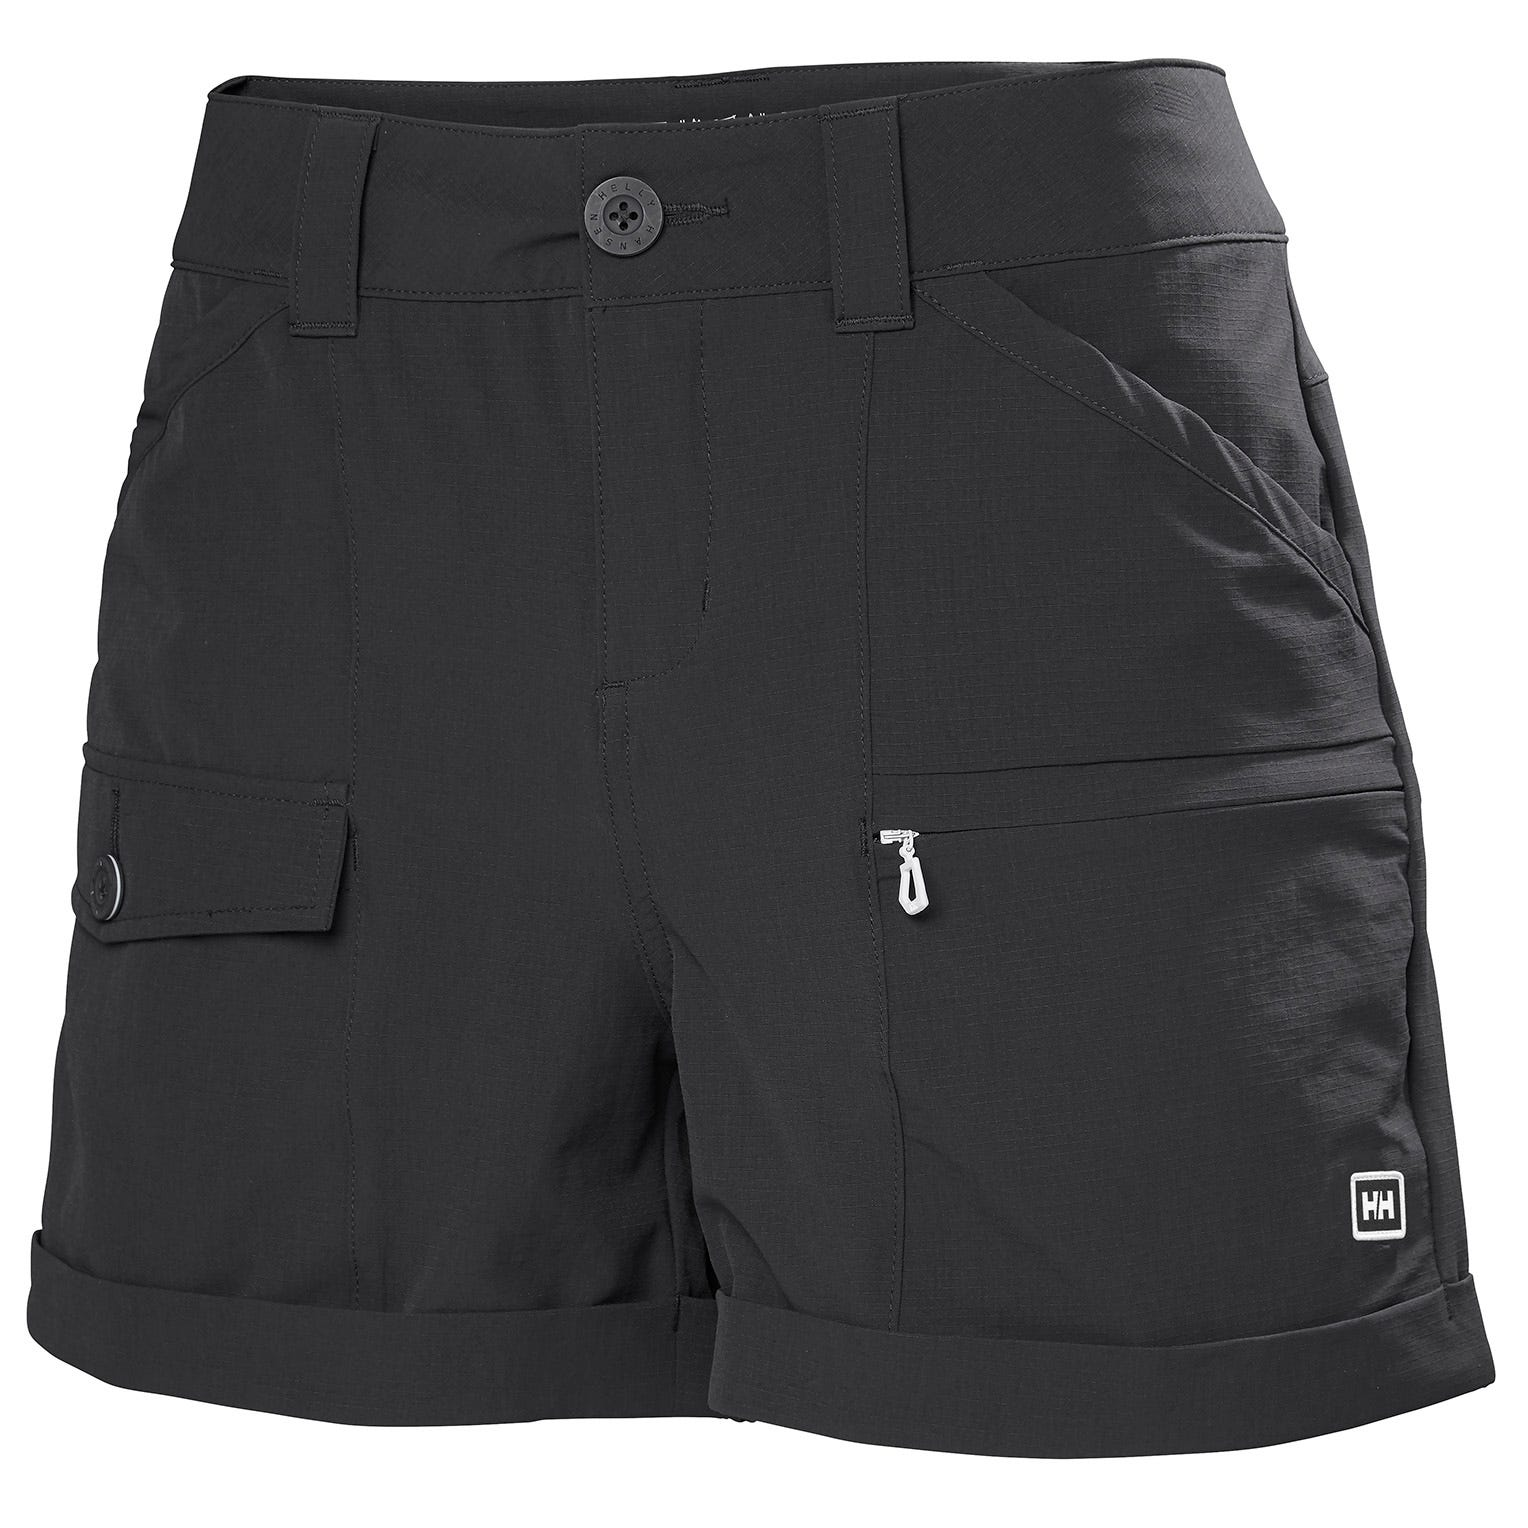 Helly Hansen Womens Maridalen Shorts Hiking Trouser Black XL